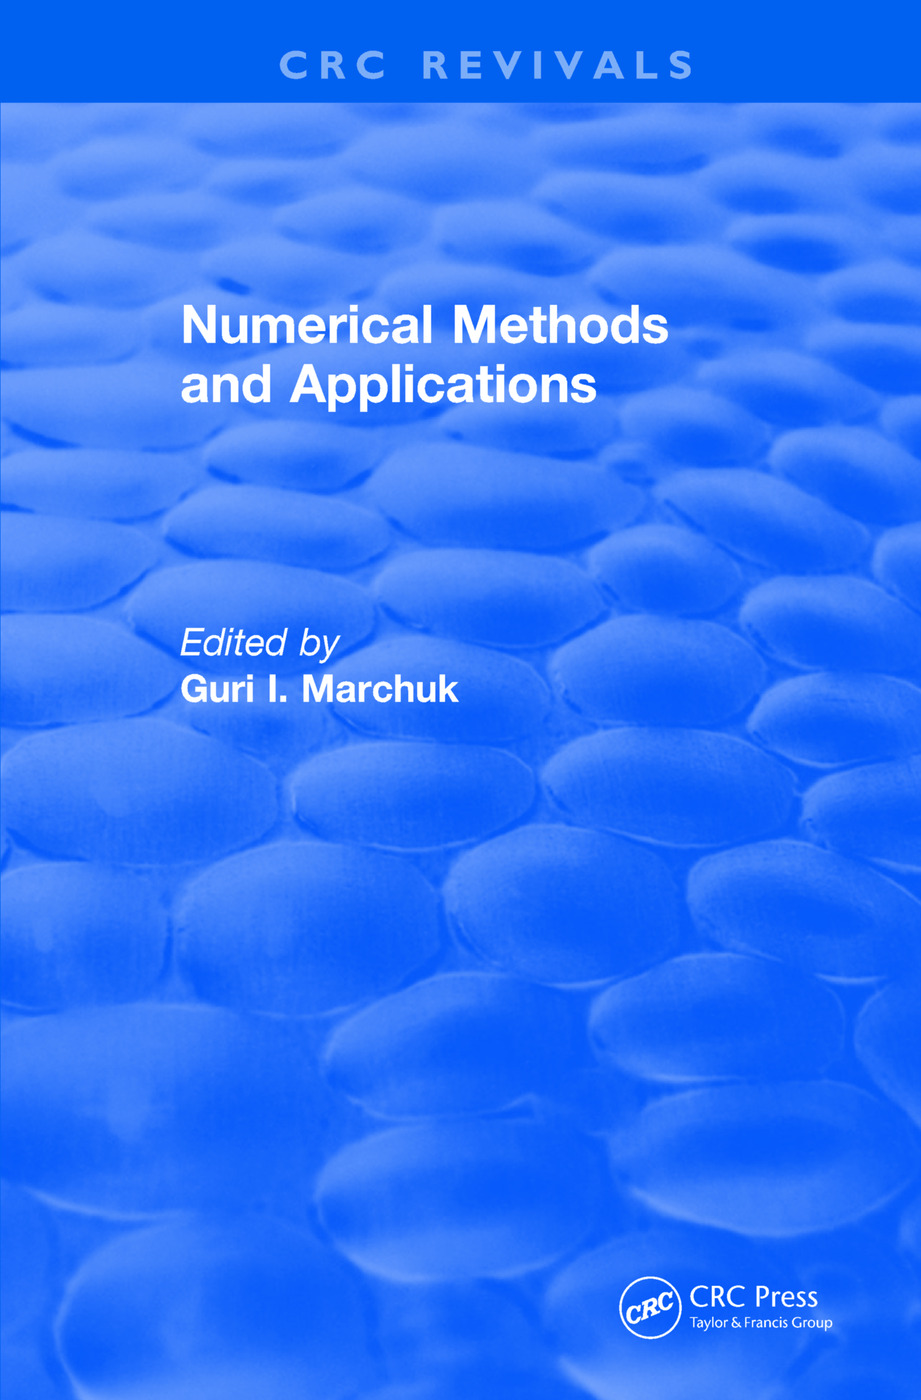 Numerical Methods and Applications (1994)